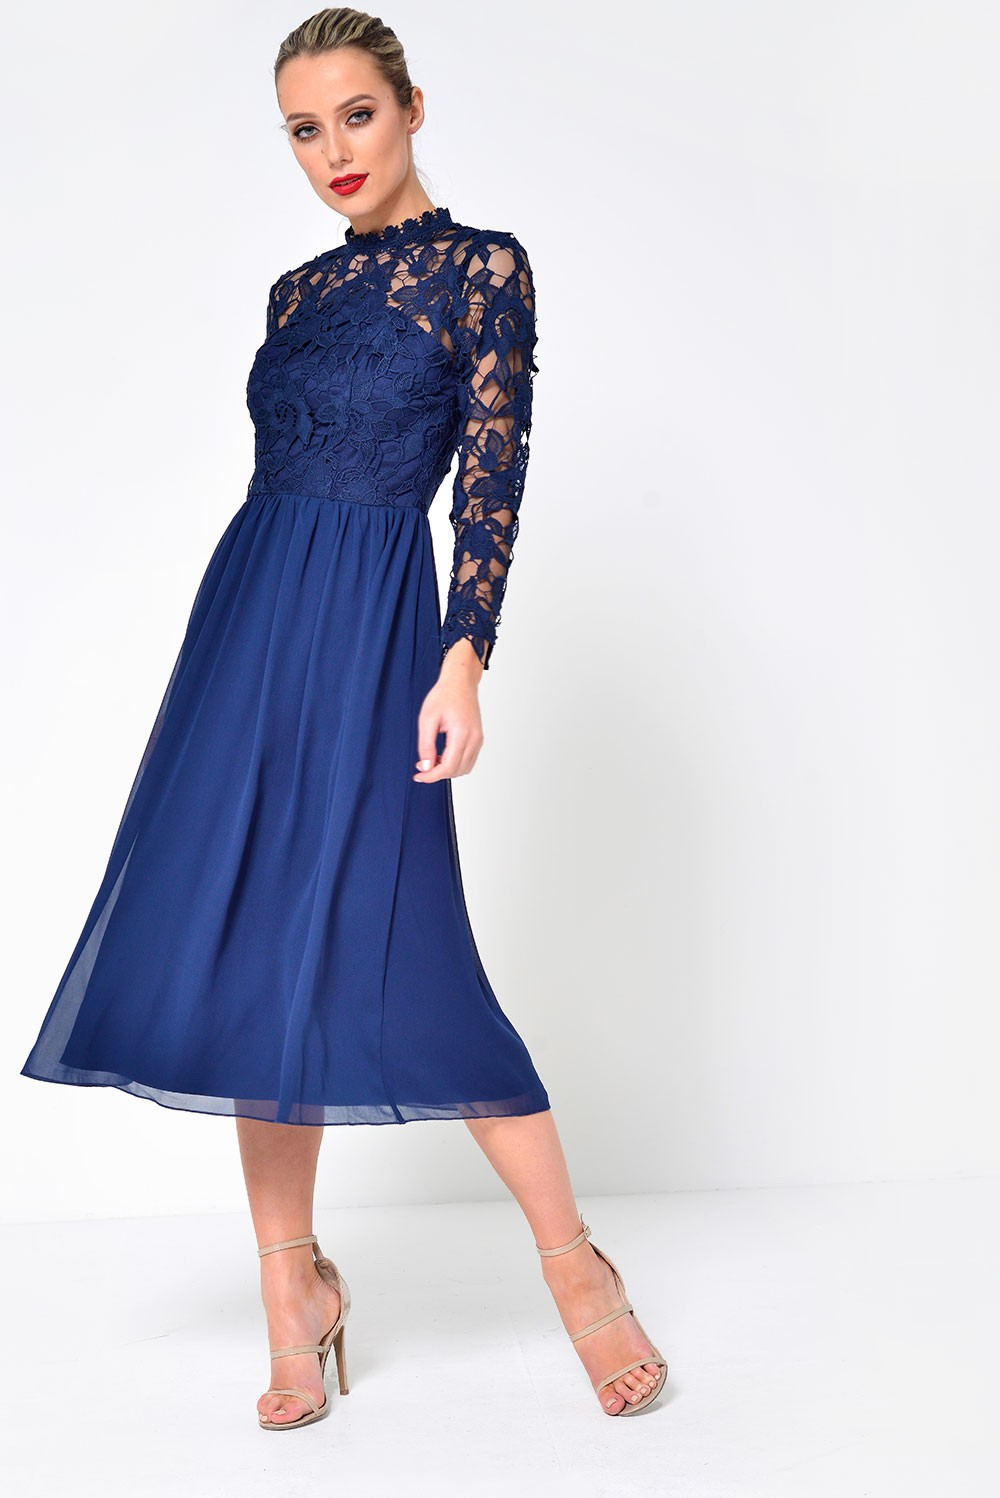 3a815858f94 ... Chi Chi 2 in 1 High Neck Midi Dress with Chiffon Skirt in Navy. Video